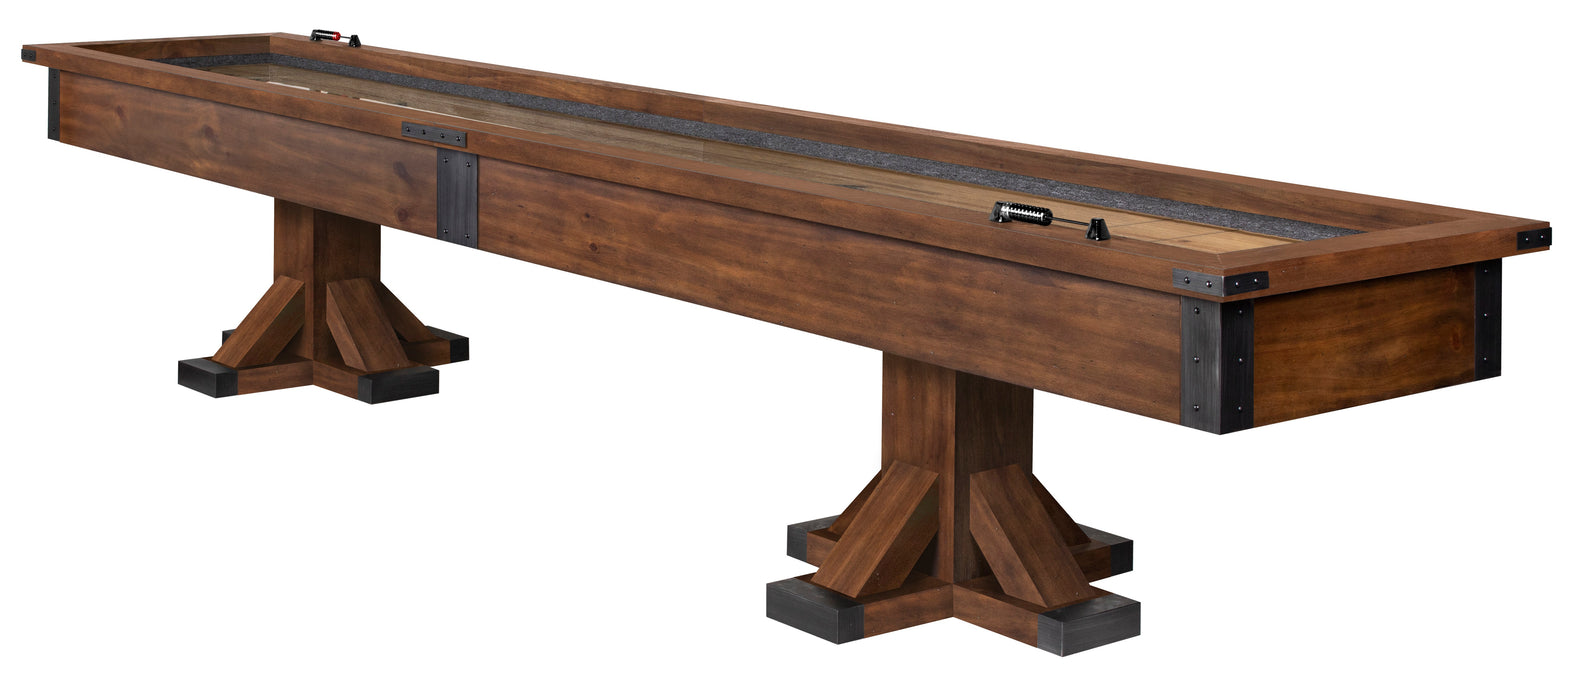 Legacy Billiards 14' Harpeth Shuffleboard